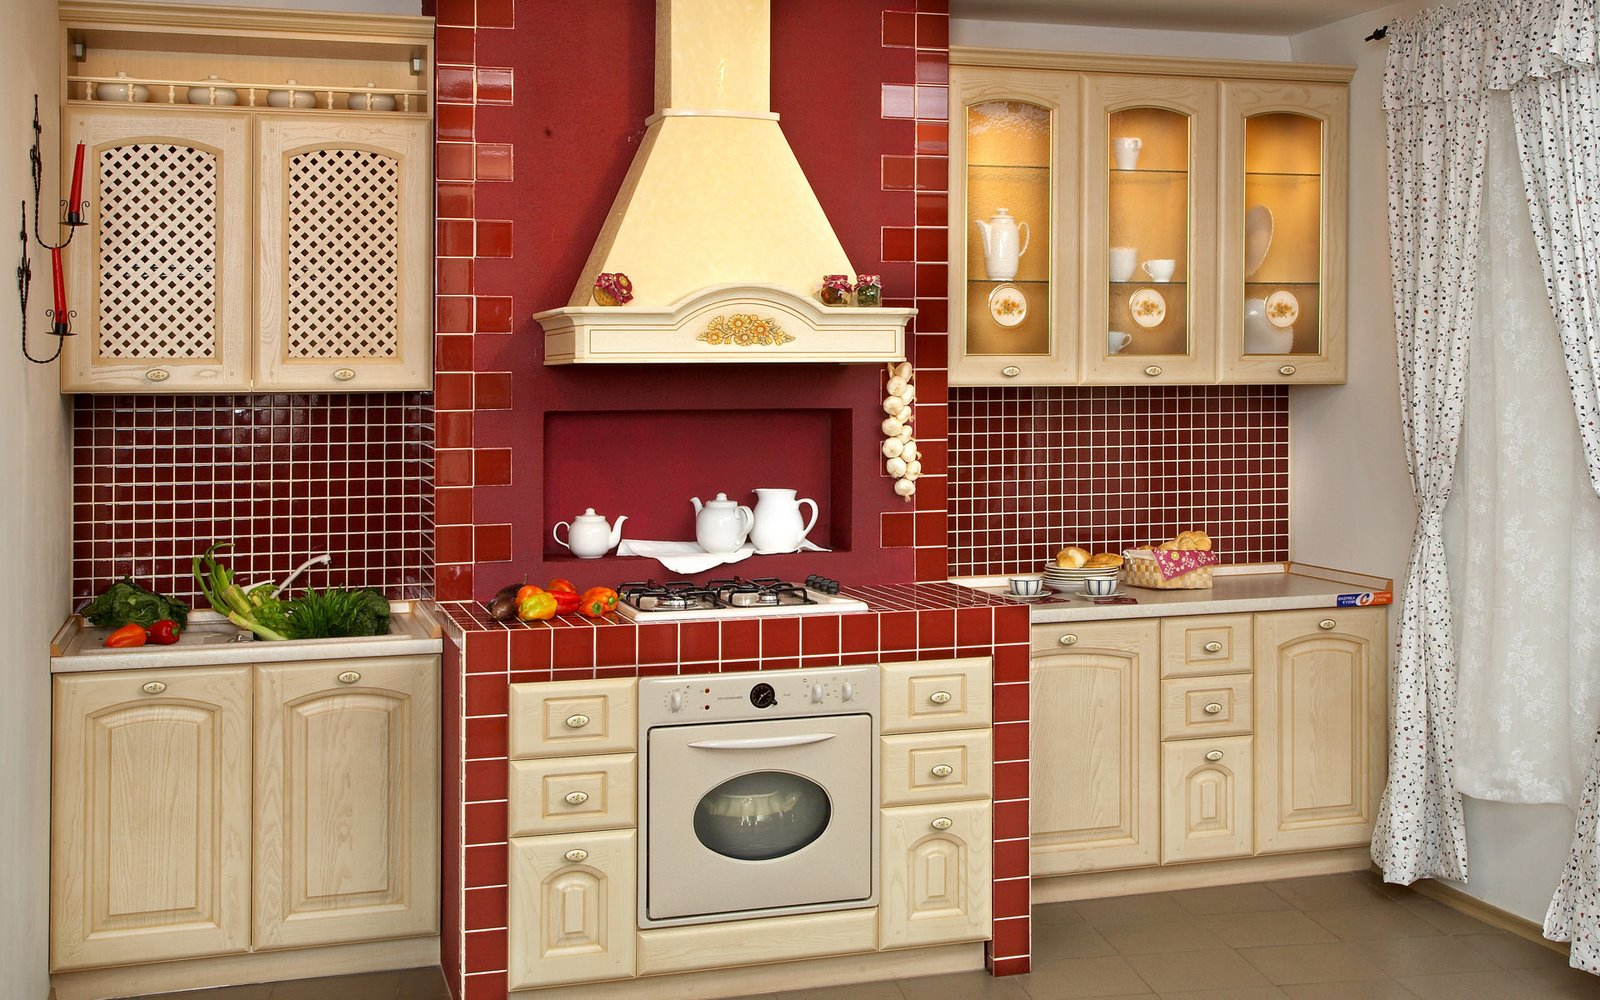 Model Style Kitchen Red And Wite : This kitchen has been designed in a thoughtful way in impeccable style ...